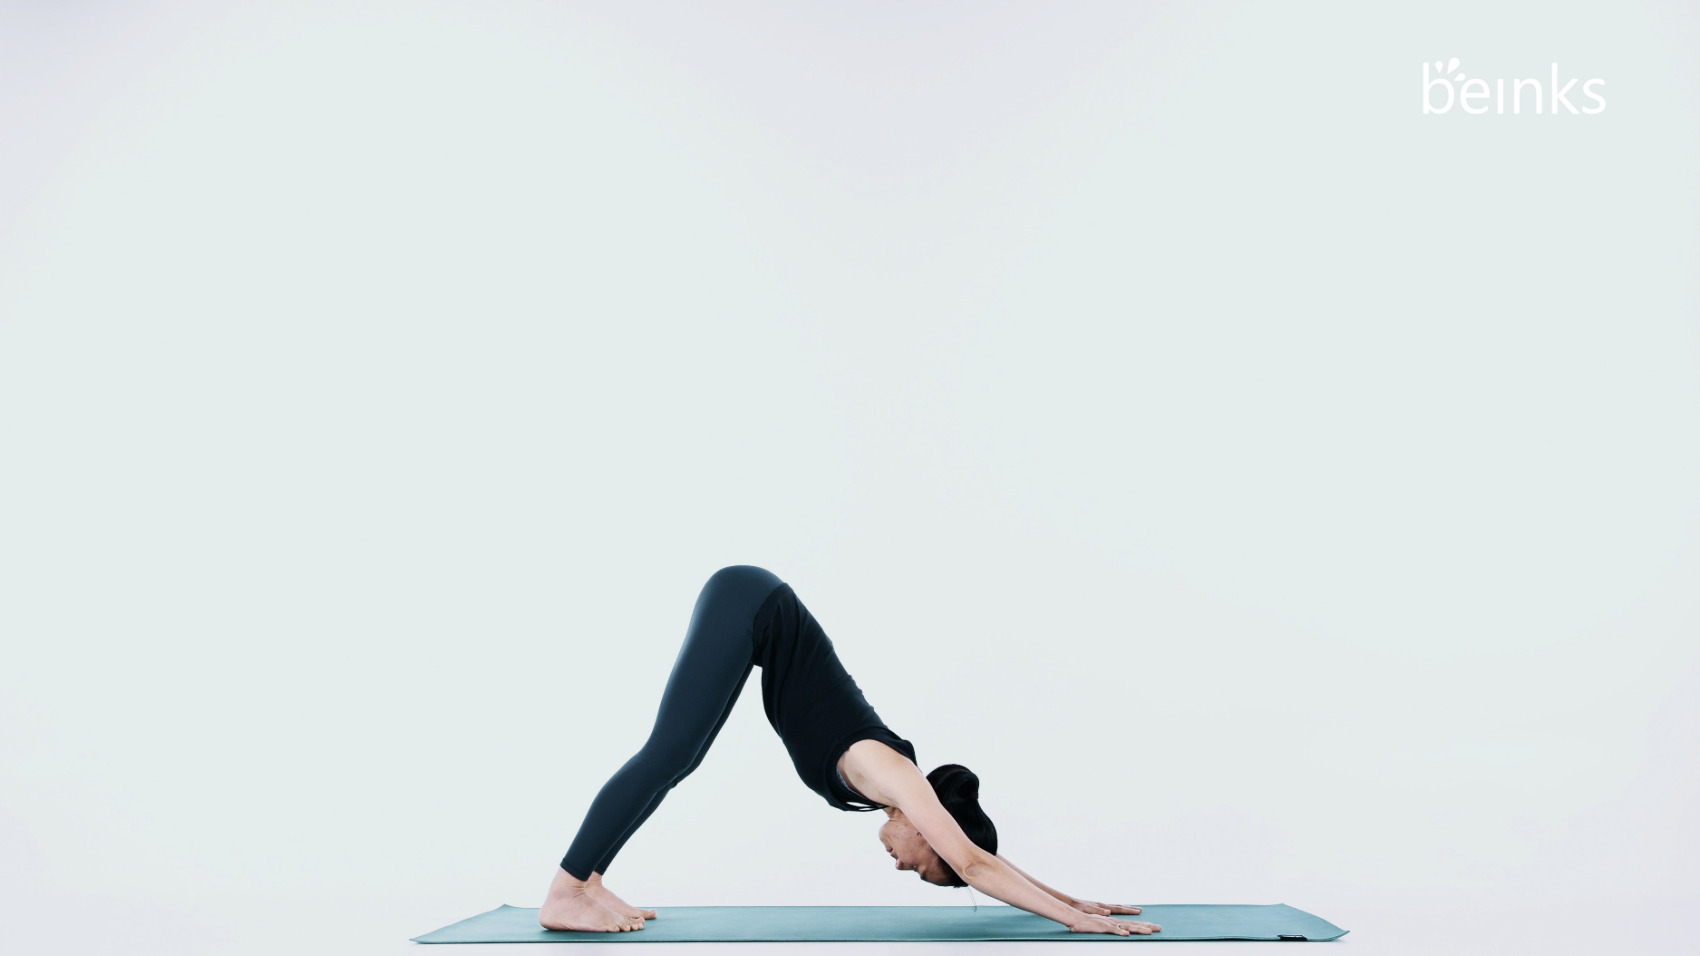 Downward Facing Dog   Everything you should know about the pose